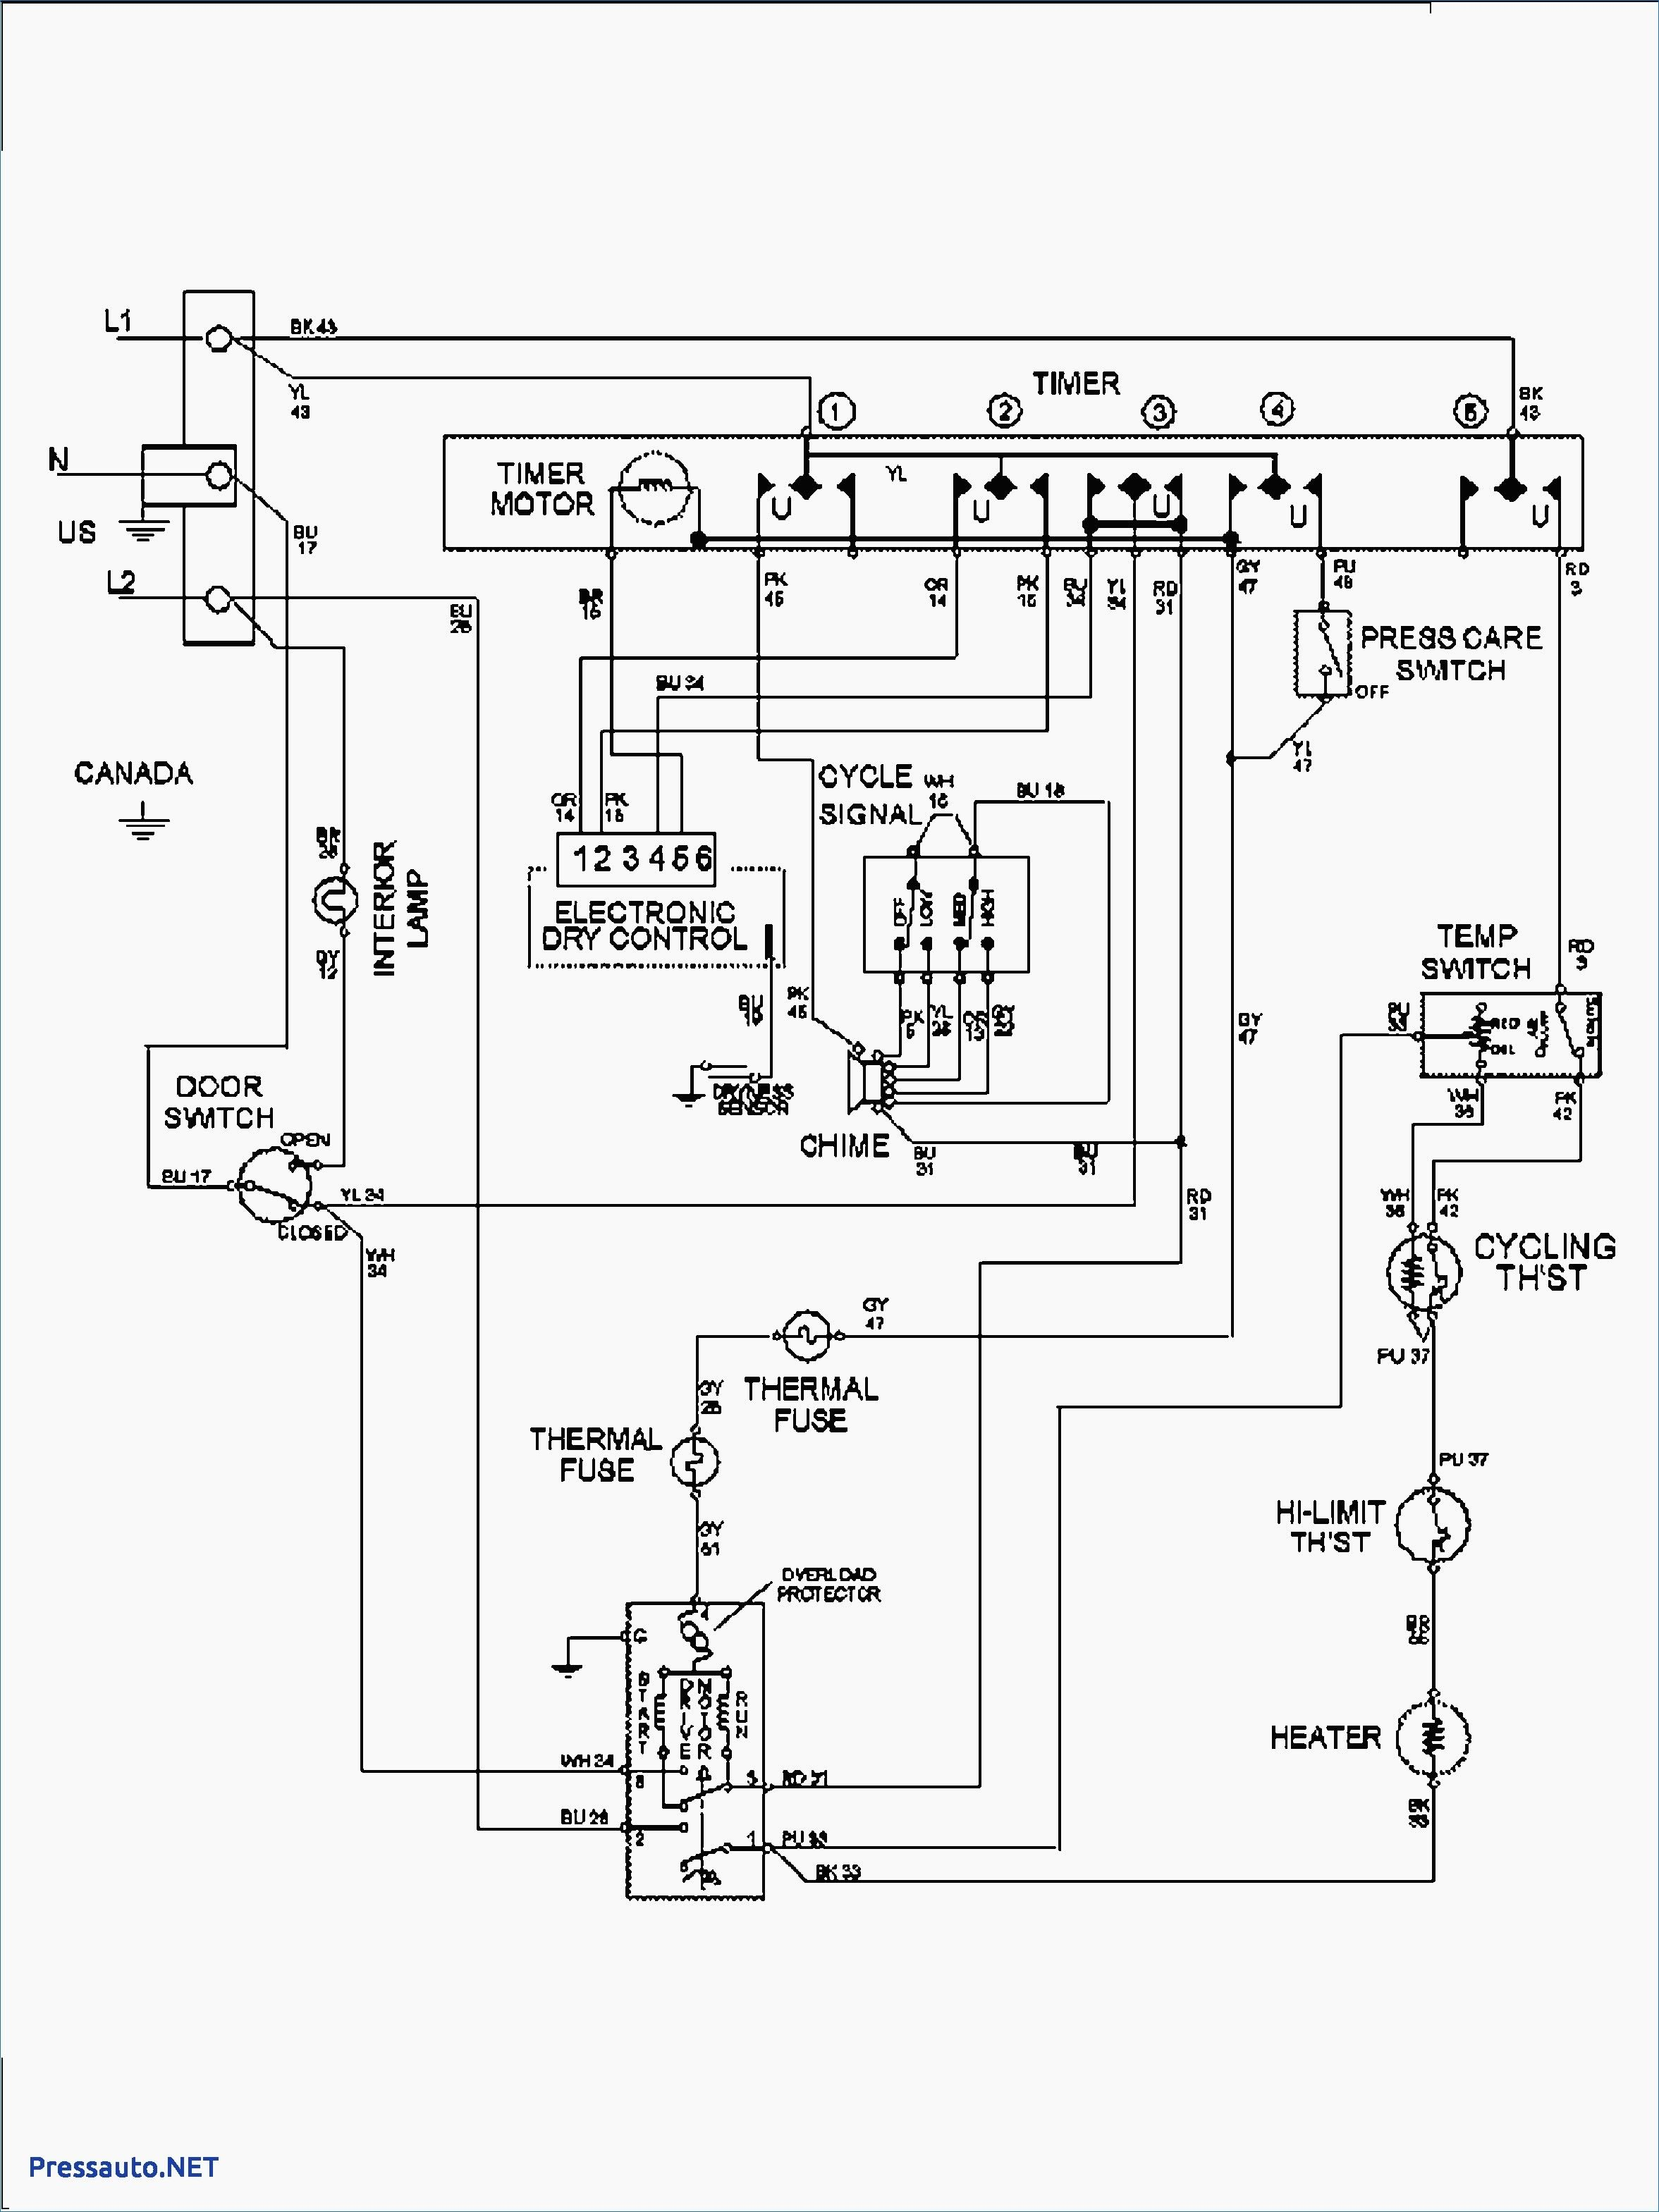 Whirlpool Schematic Diagrams - 1982 Jeep Cj5 Wiring Diagram for Wiring Diagram  Schematics | Whirlpool Schematic Diagrams |  | Wiring Diagram Schematics